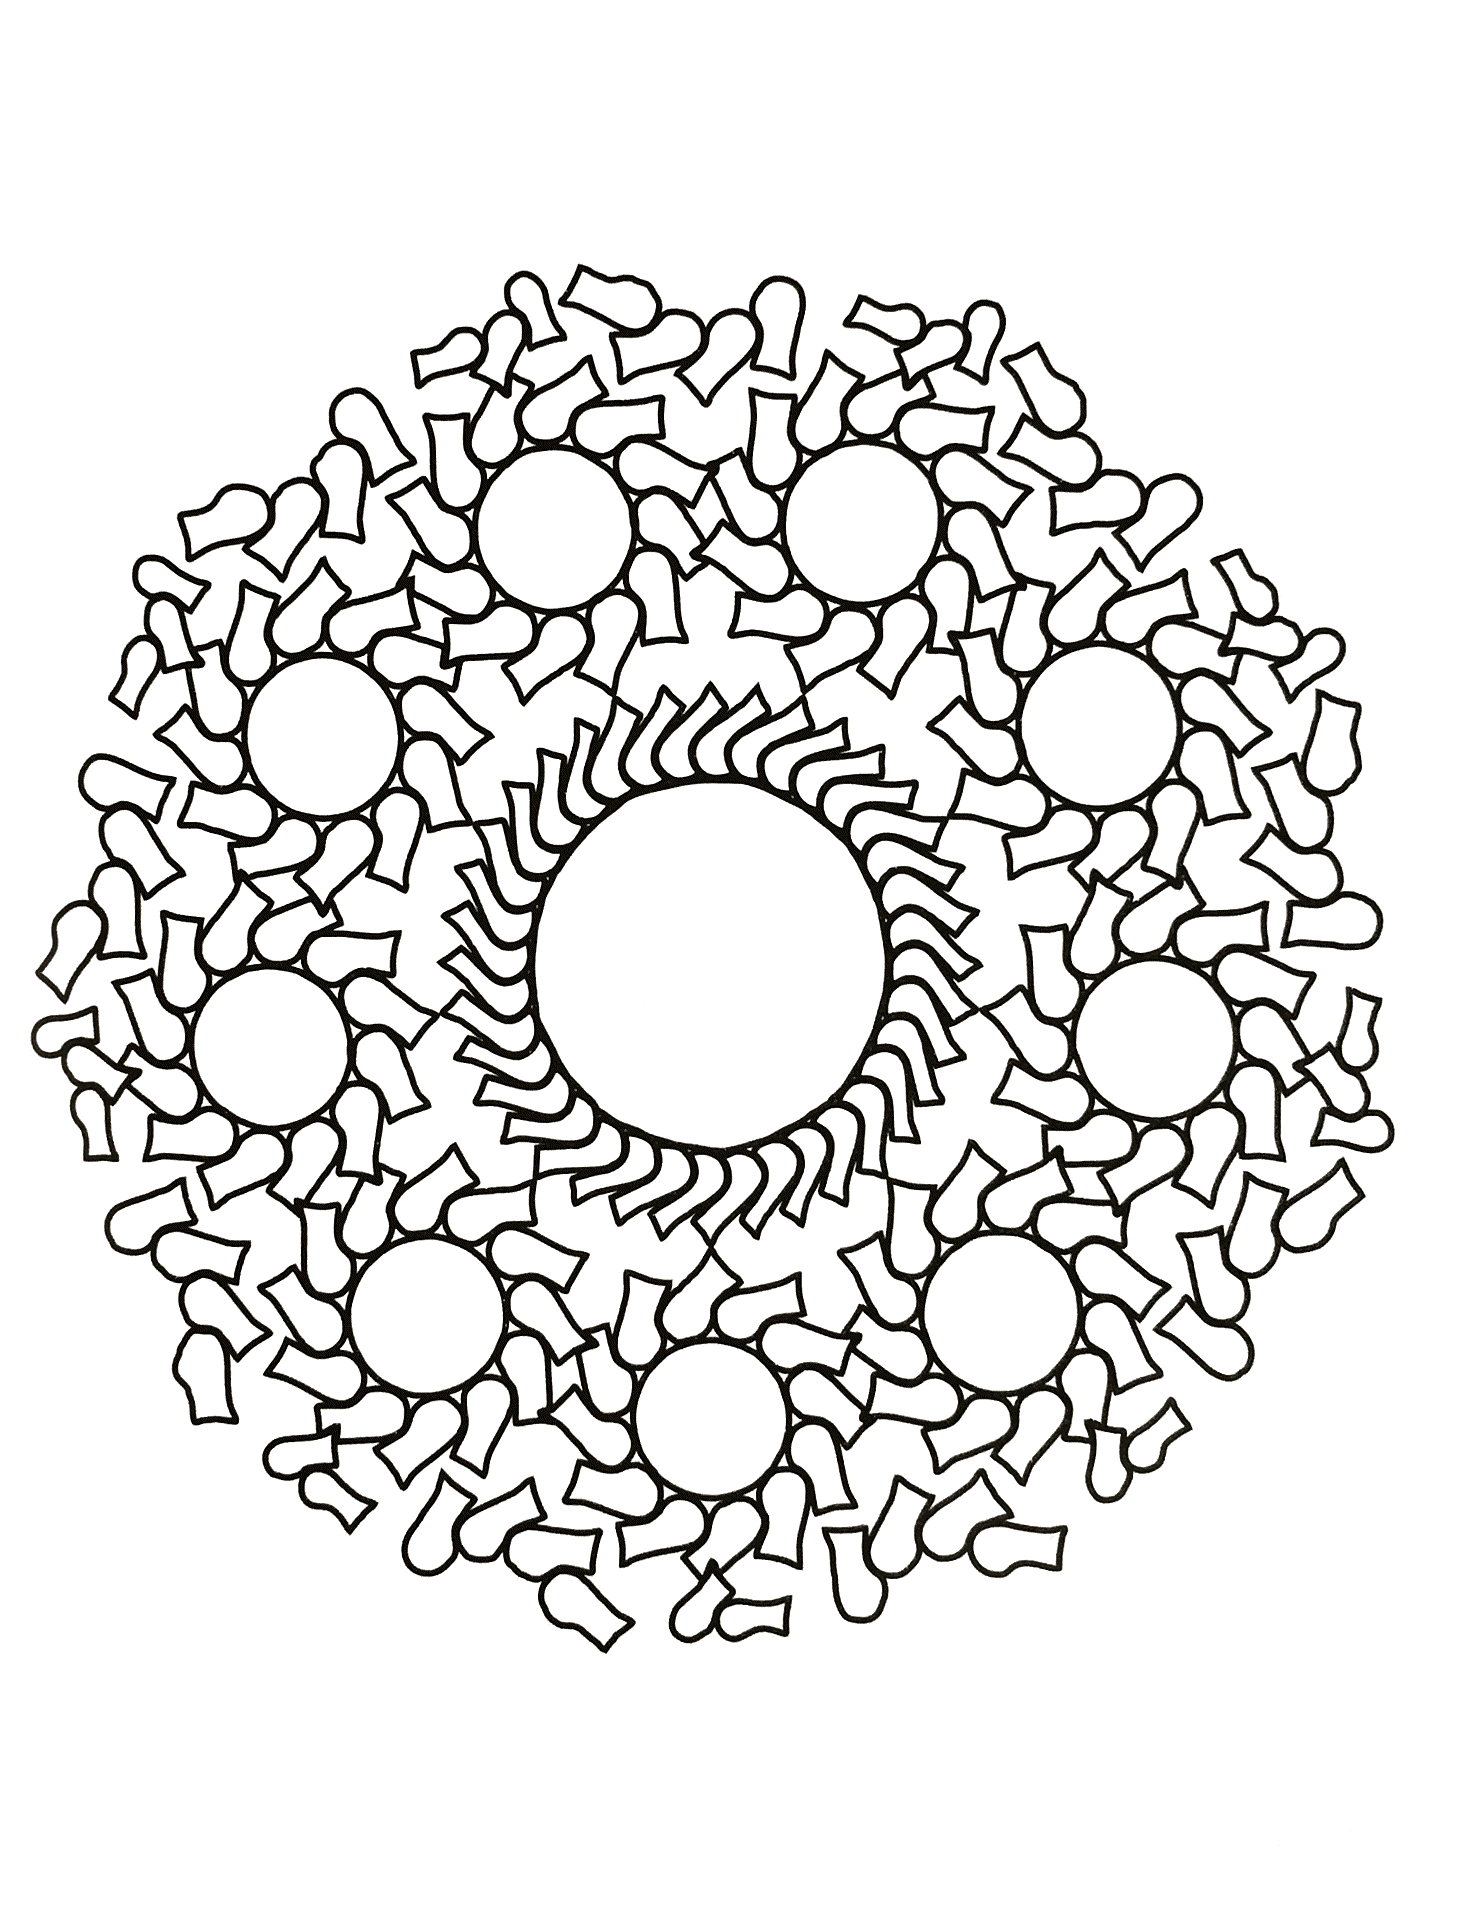 mandalas to download for free 7 m alas adult coloring pages page 4. Black Bedroom Furniture Sets. Home Design Ideas